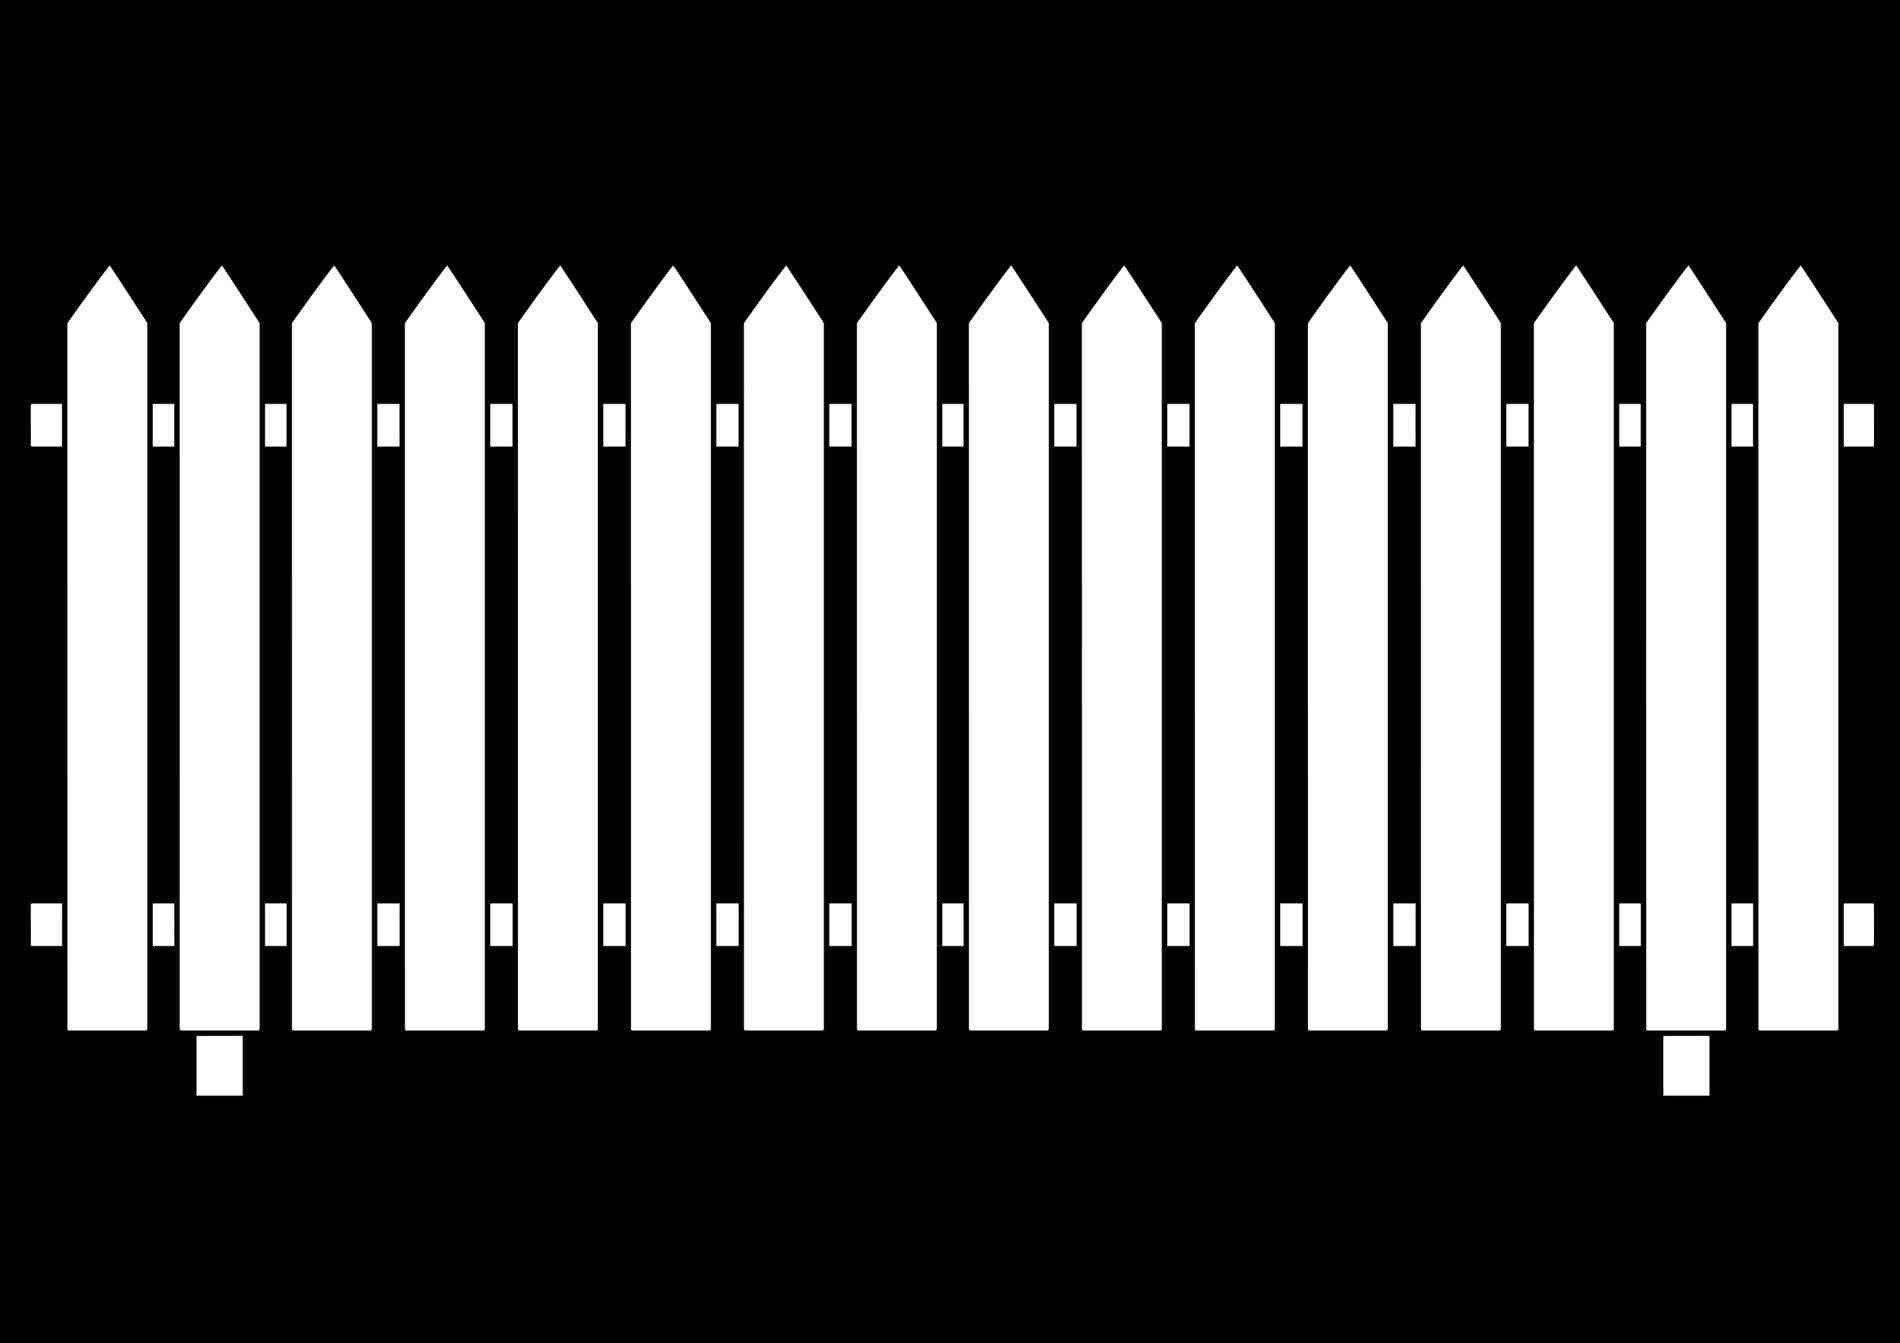 . PlusPng.com black and white Rhclipartmagcom wooden farm png clip art library home u  gardens geek rhdrhousewebsite wooden farm fence clipart PlusPng.com